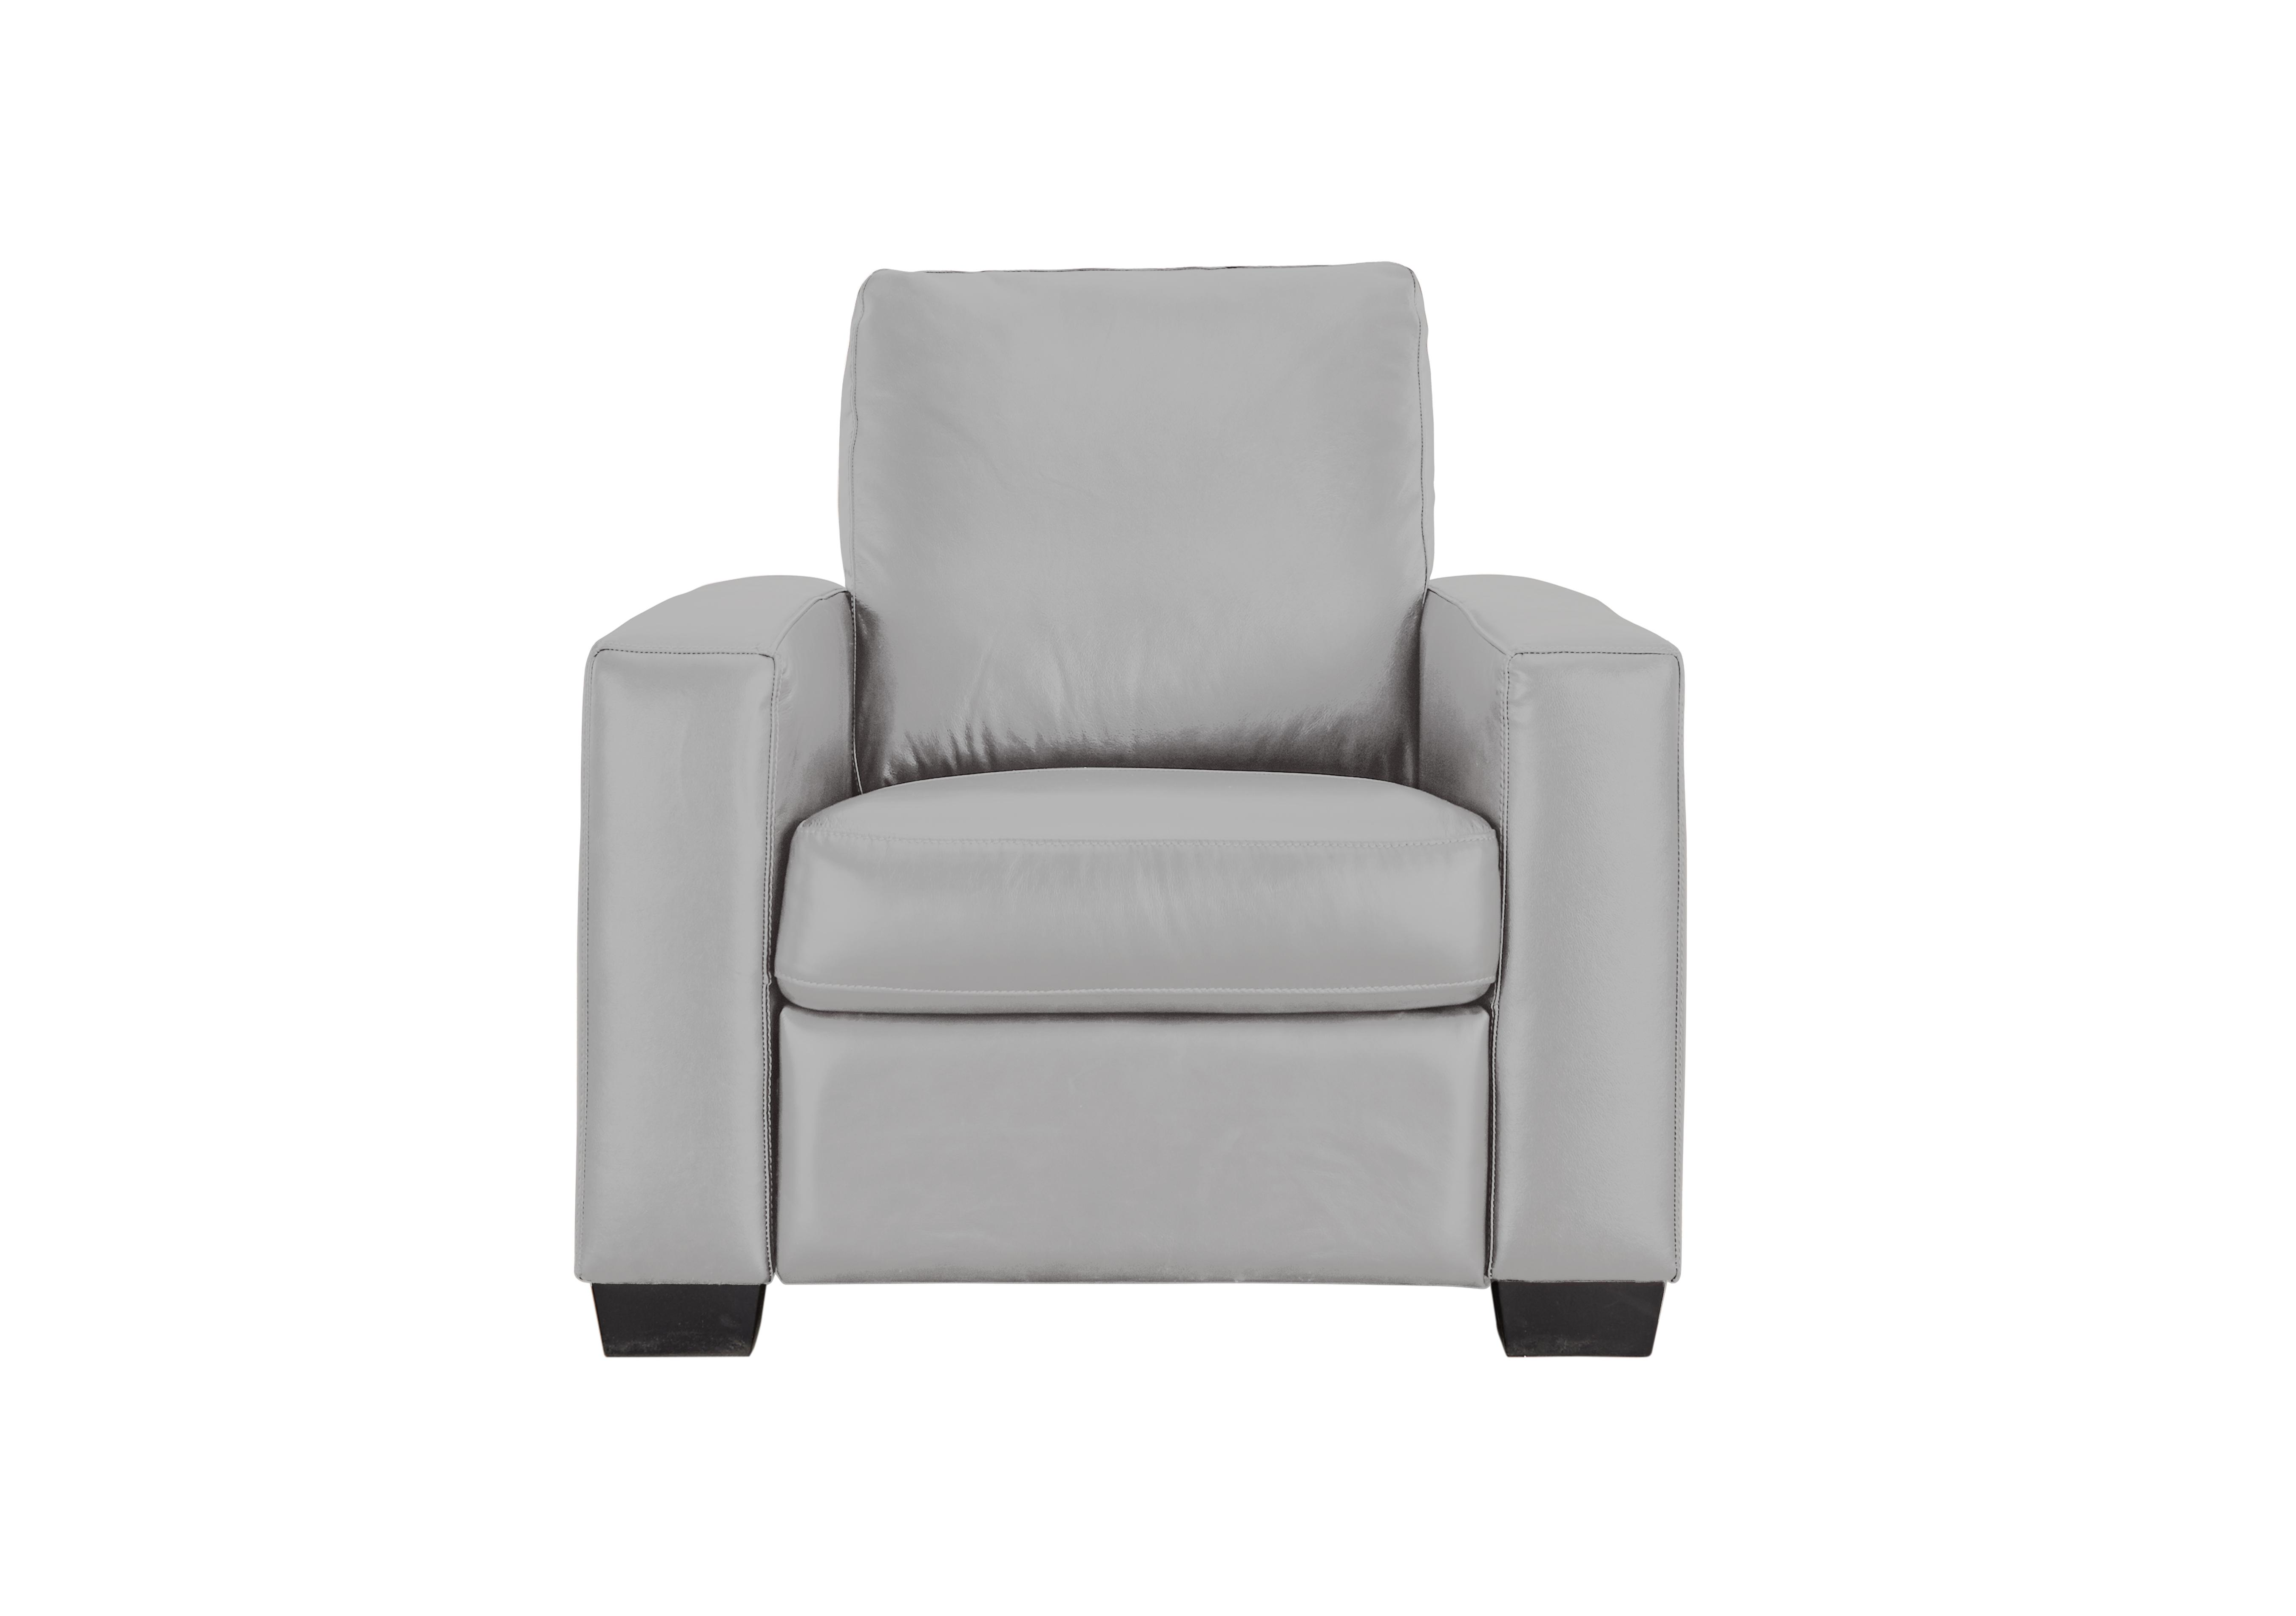 Dante Leather Recliner Armchair